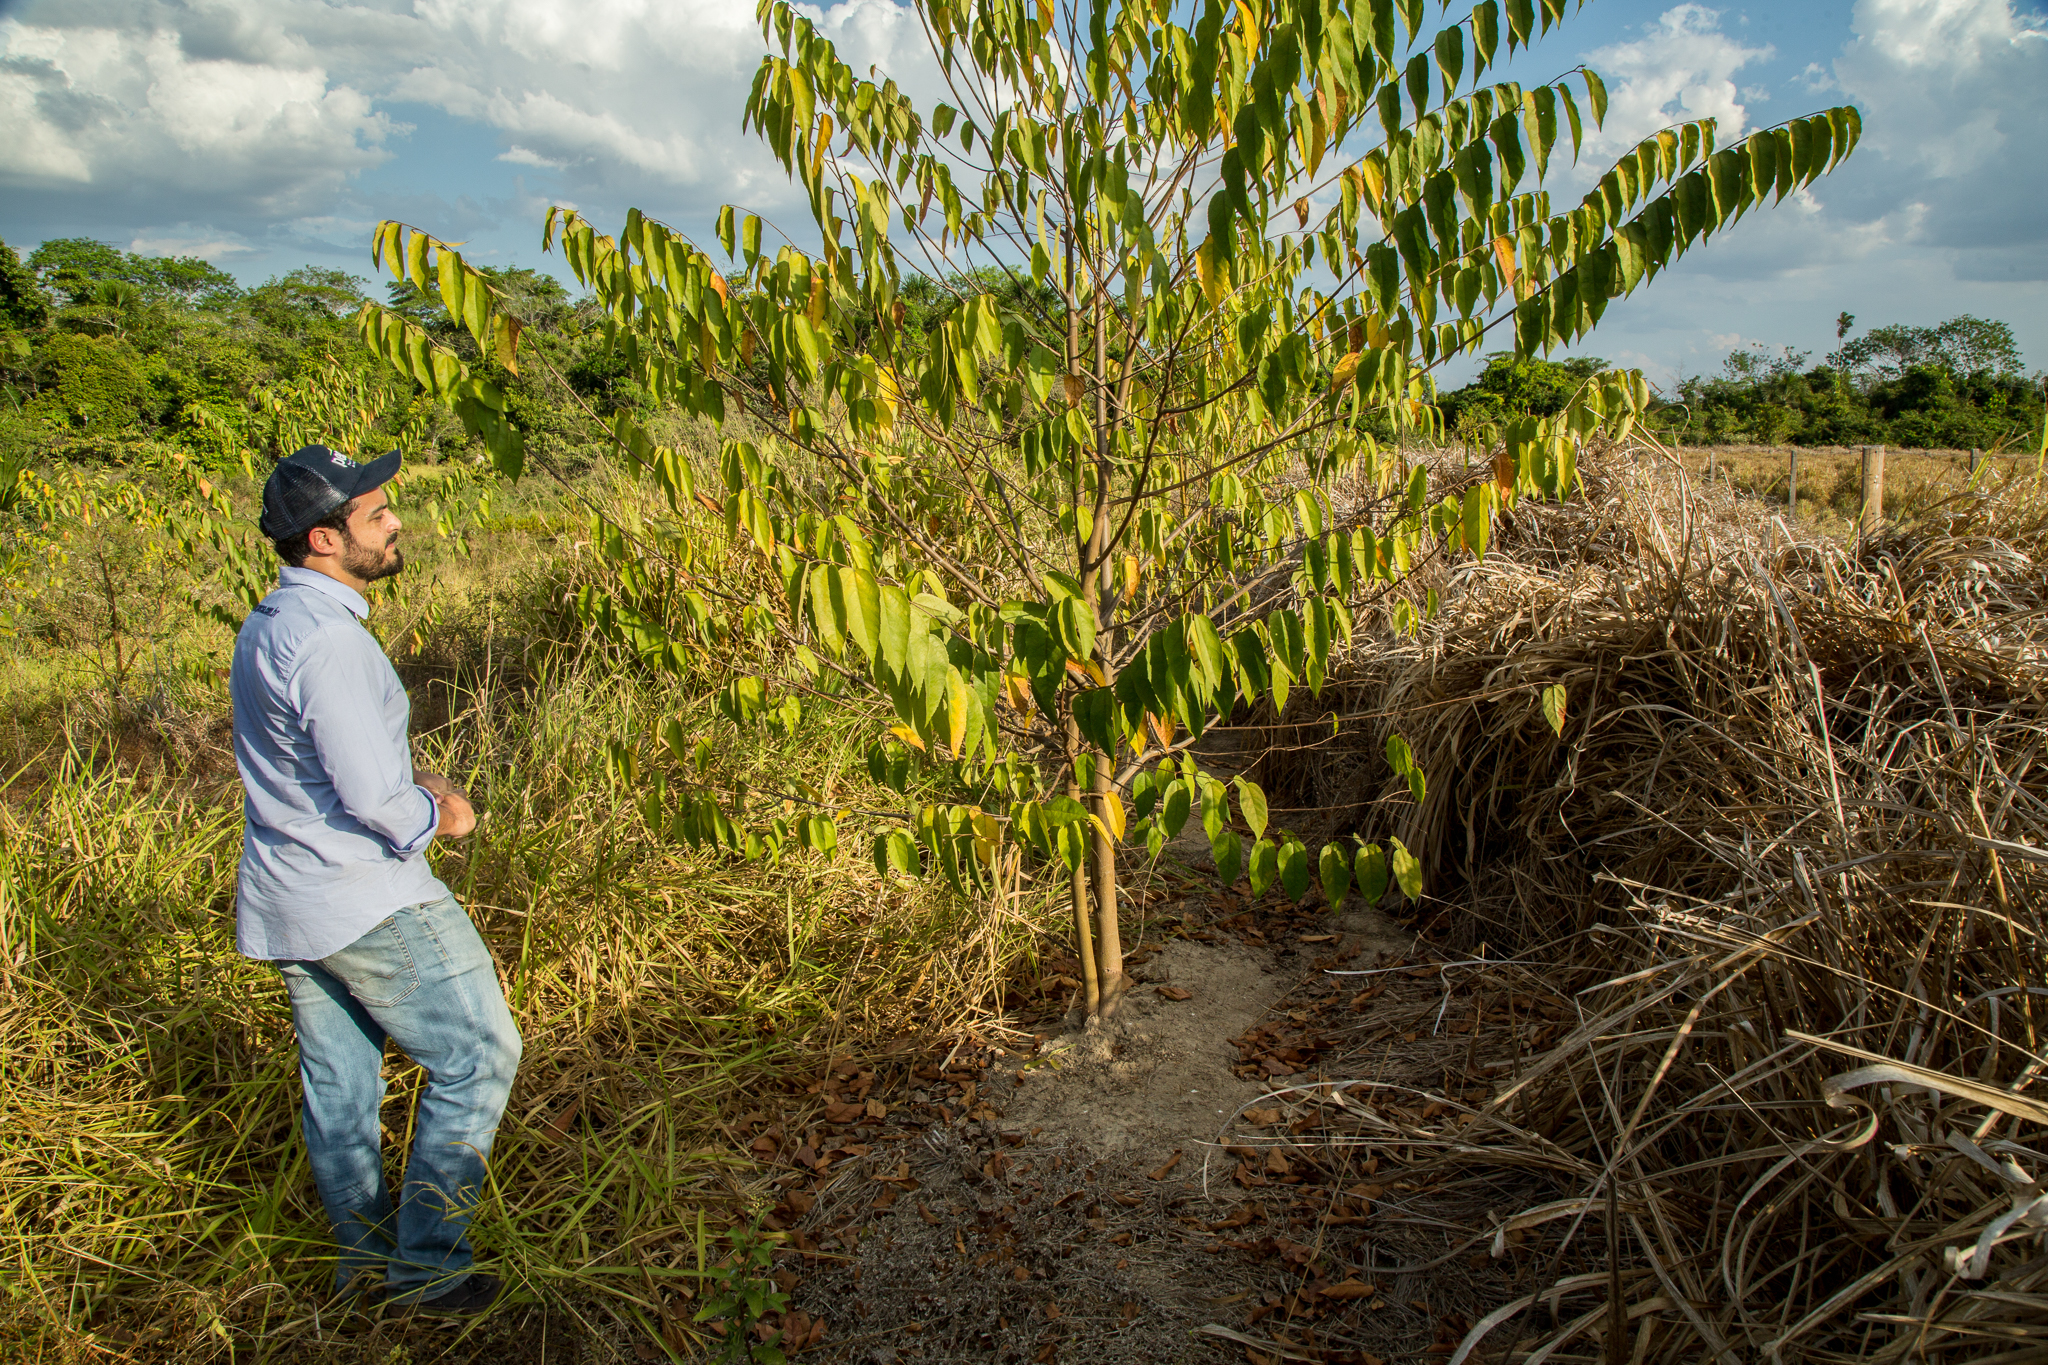 Pedro Nogueira of Pecsa inspects a leguminous tree planted two years ago to repair the soil. Leguminous trees fix nitrogen and help create favorable conditions for other plant species to move in and fill out the riparian forest. Photograph by Christina Selby